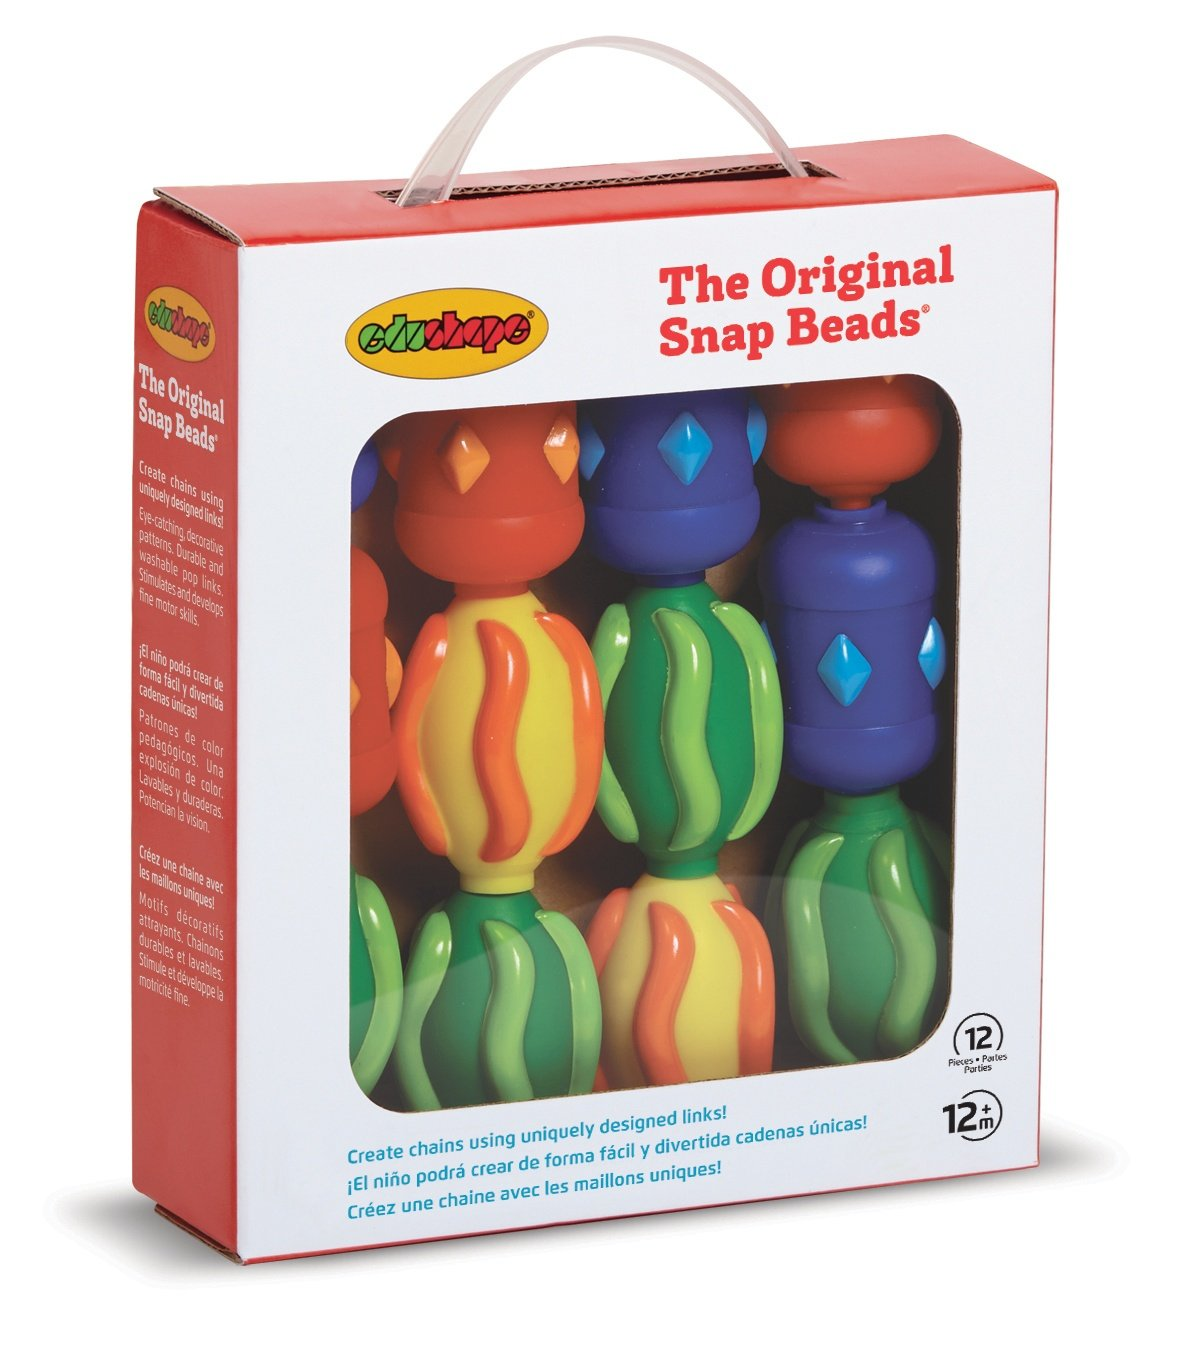 Edushape Original Snap Beads Box 995012